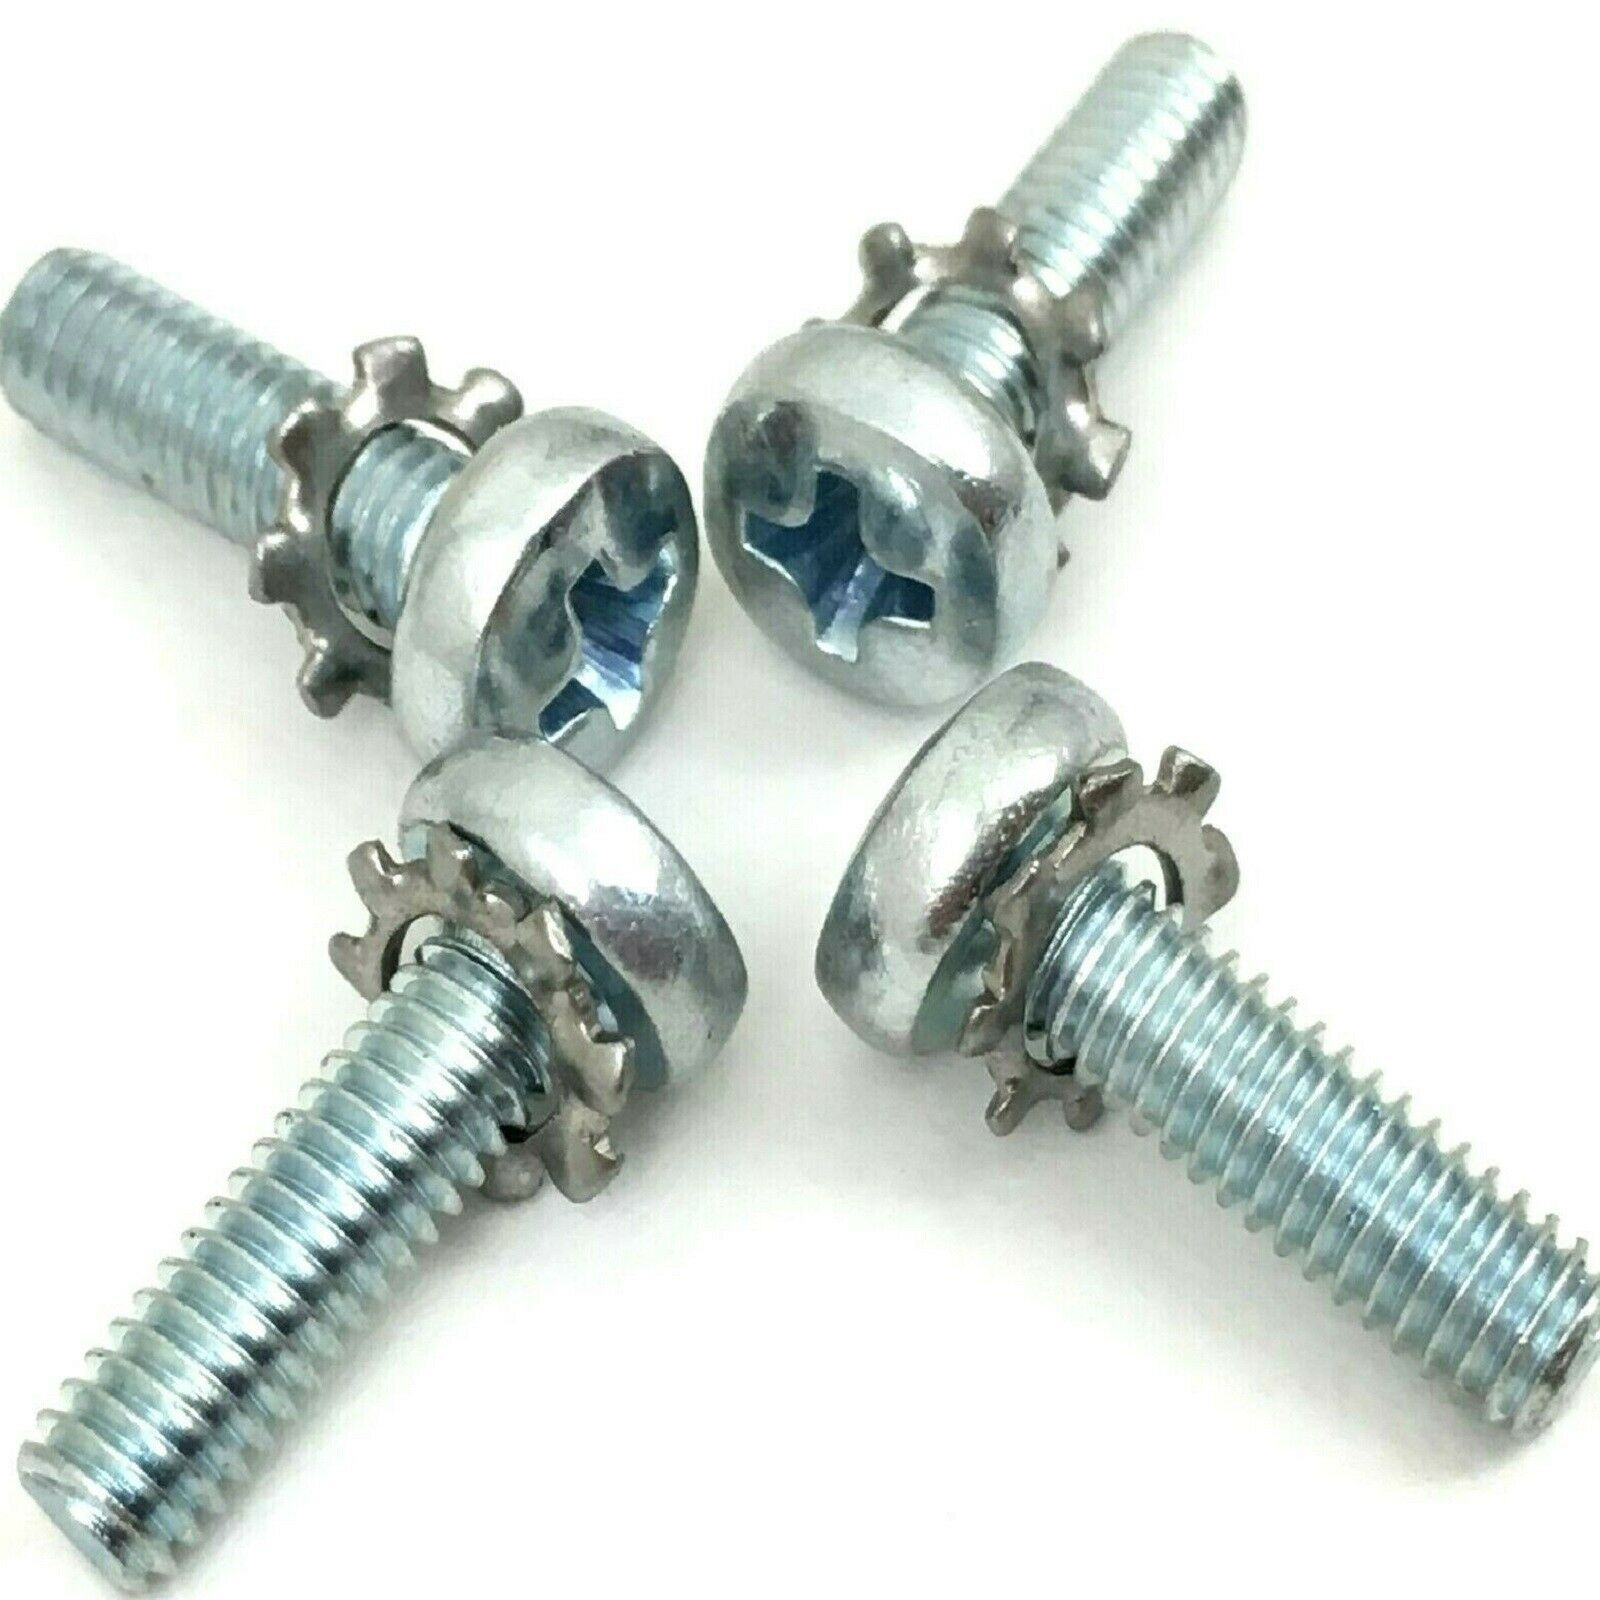 New Screws To Attach Base Stand To LG TV 42LB6300, 42LB6500, 49LF5100, 49LF5400 - $6.62